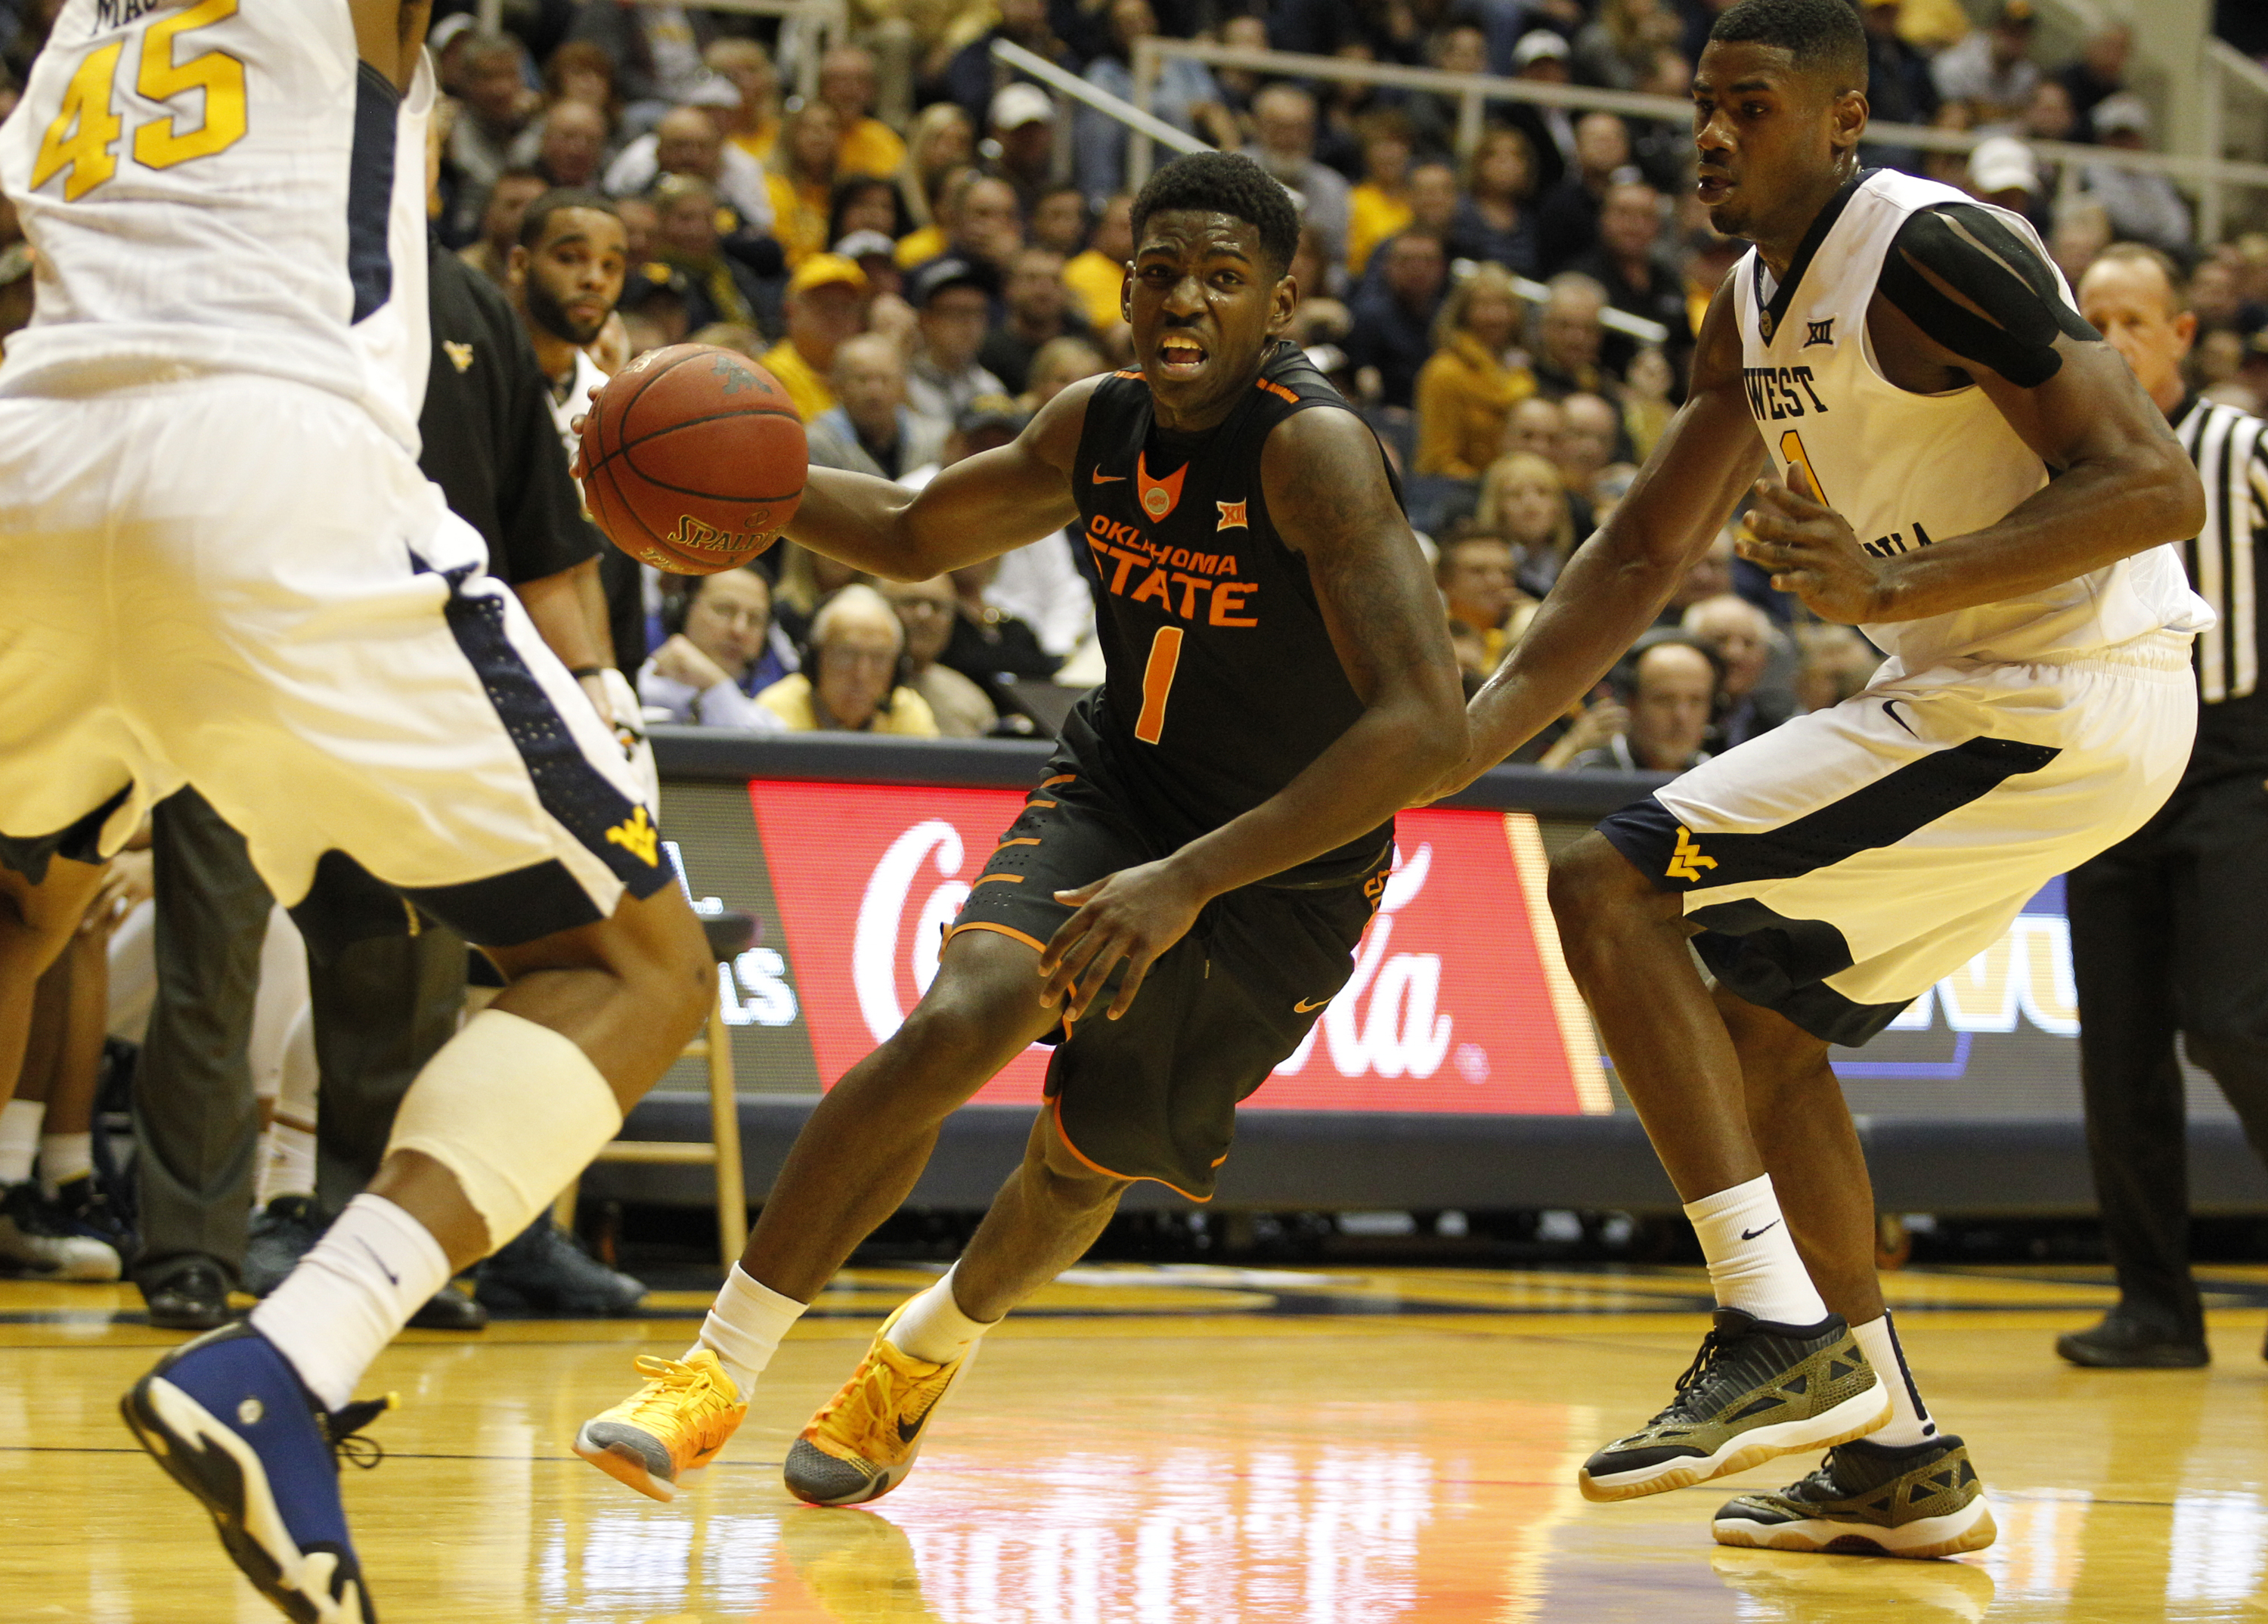 MORGANTOWN, WV - JANUARY 09: Jawun Evans #1 of the Oklahoma State Cowboys drives to the basket during the game against Jonathan Holton #1 of the West Virginia Mountaineers at the WVU Coliseum on January 9, 2016 in Morgantown, West Virginia. (Photo by Justin K. Aller/Getty Images)